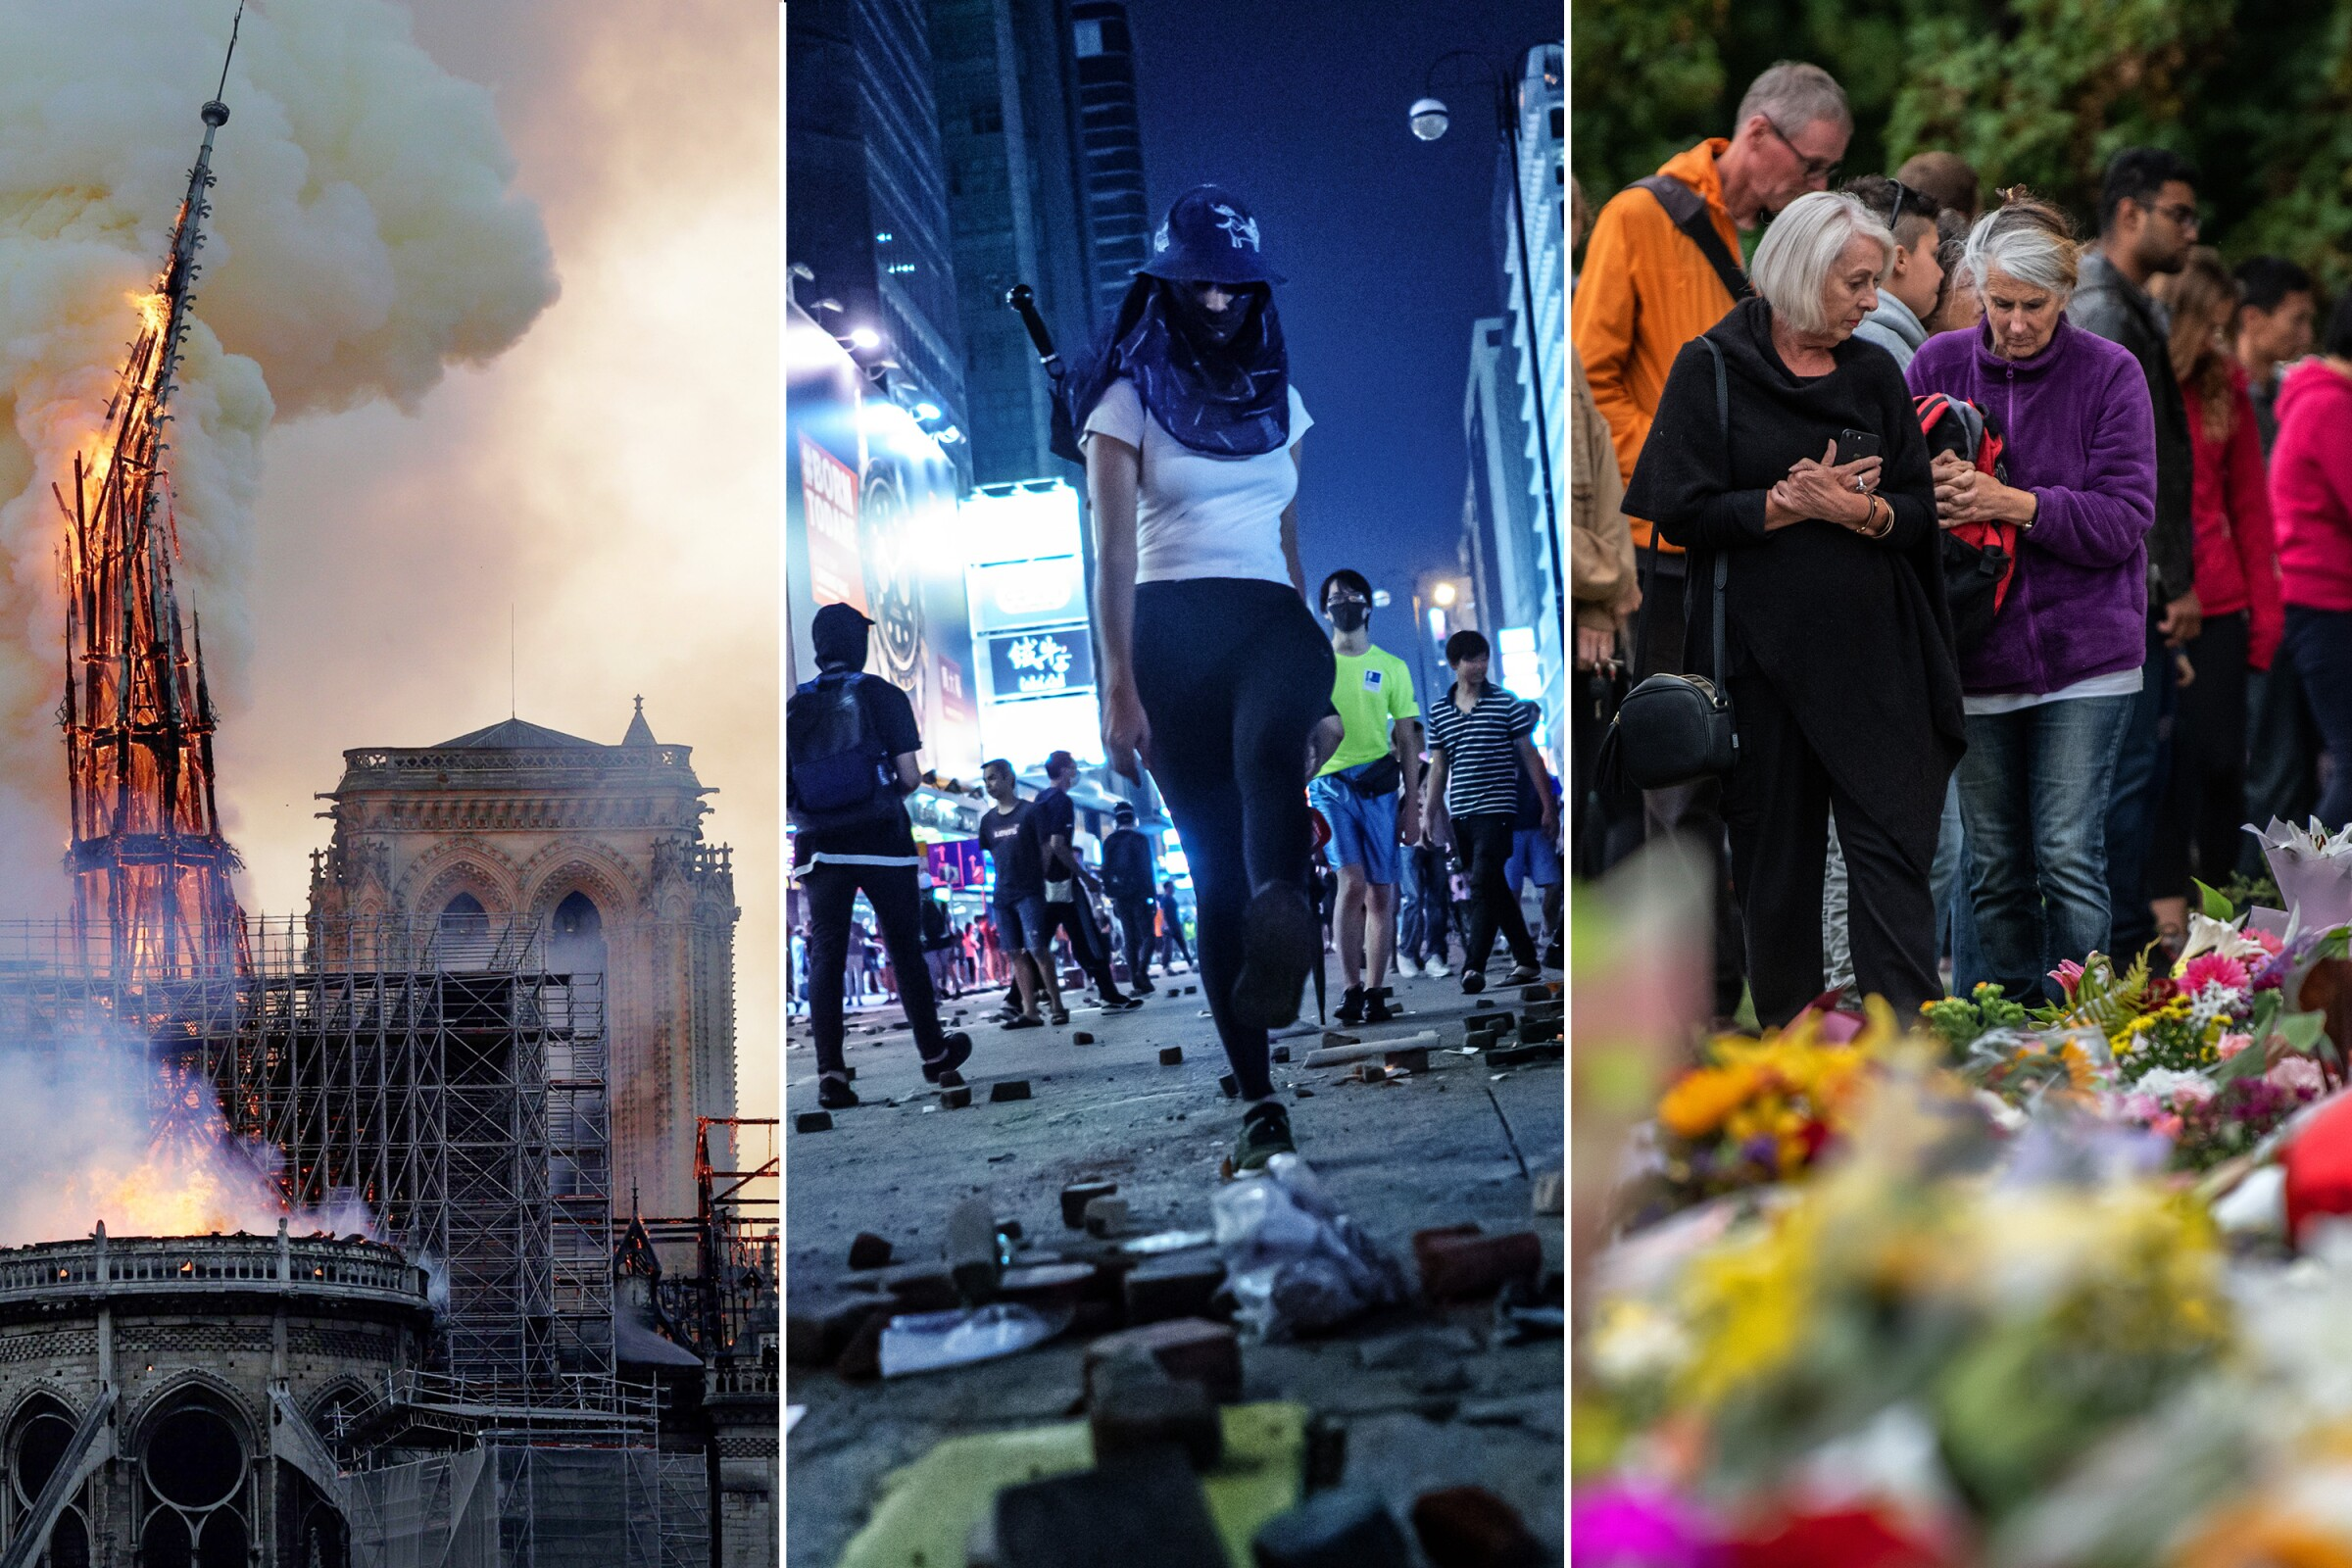 Notre Dame Cathedral fire, protests in Hong Kong, a memorial in New Zealand